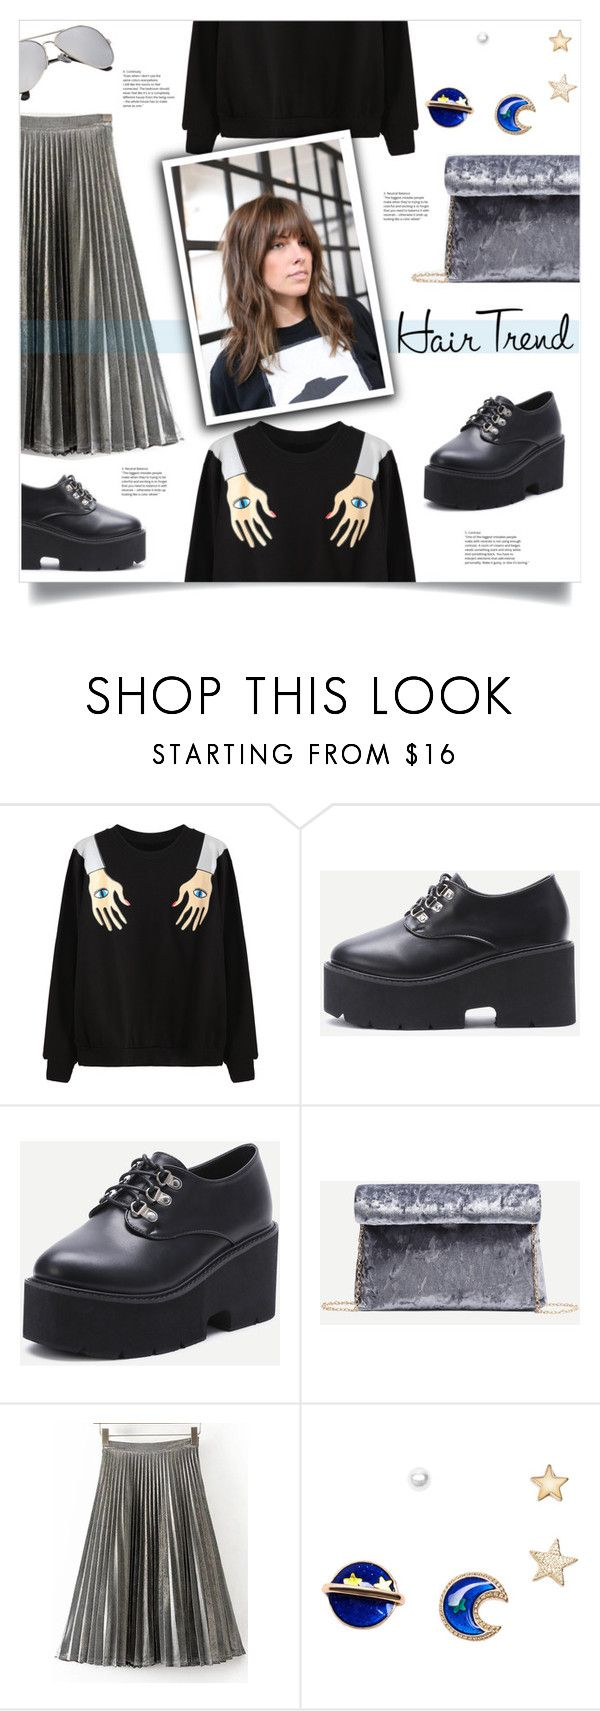 """Matchy-Matchy Hair"" by mahafromkailash ❤ liked on Polyvore featuring WithChic"